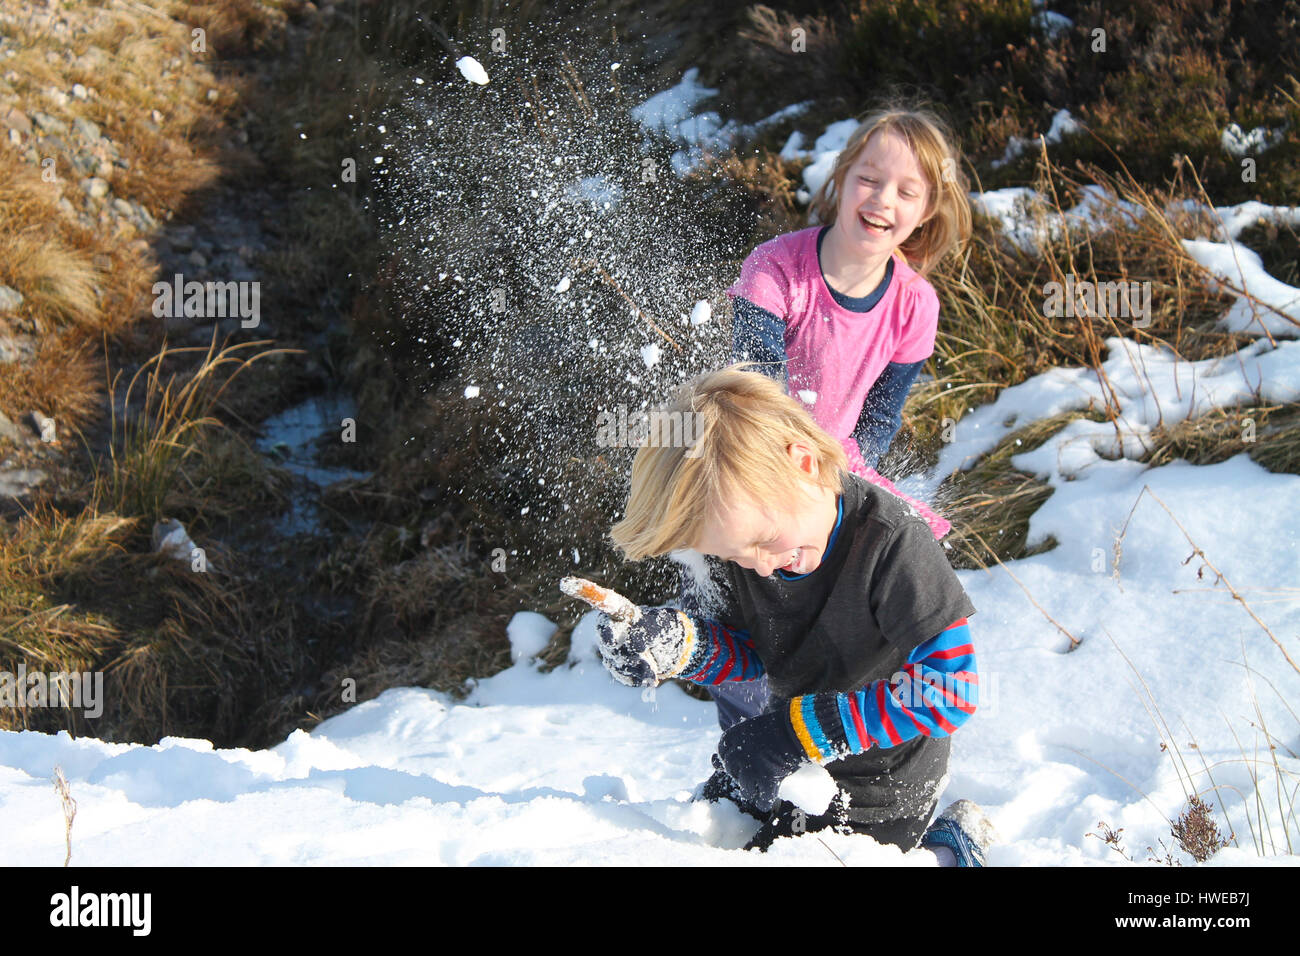 Children having a snowball fight with full impact - Stock Image